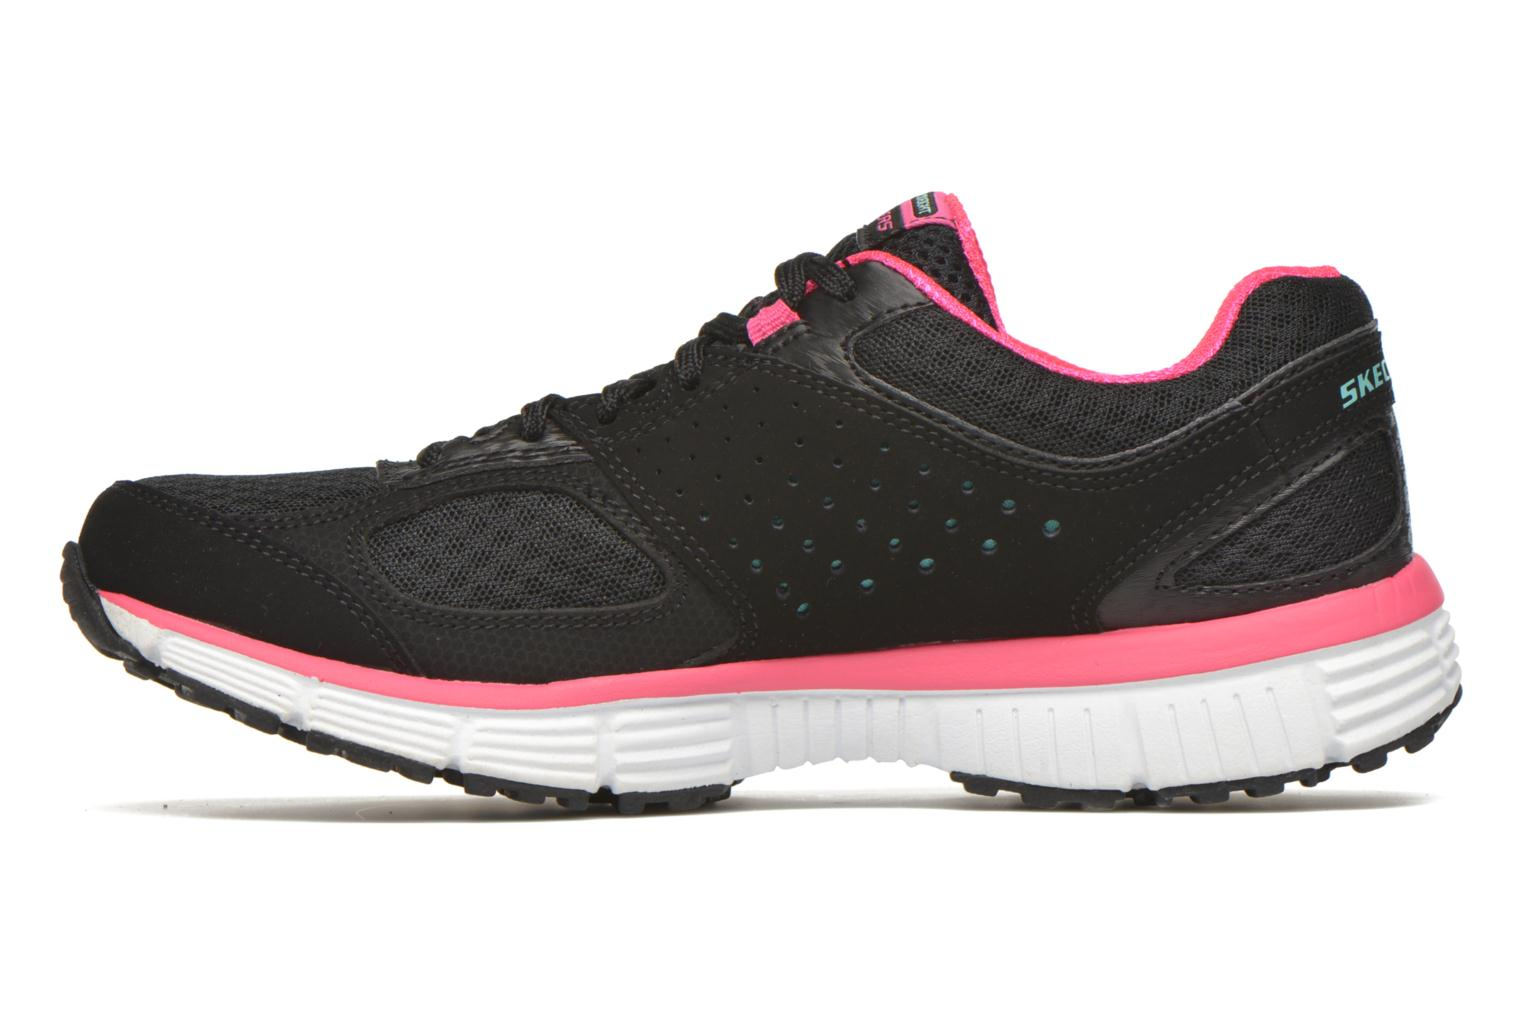 Agility - Perfect FI Black/ Hot Pink